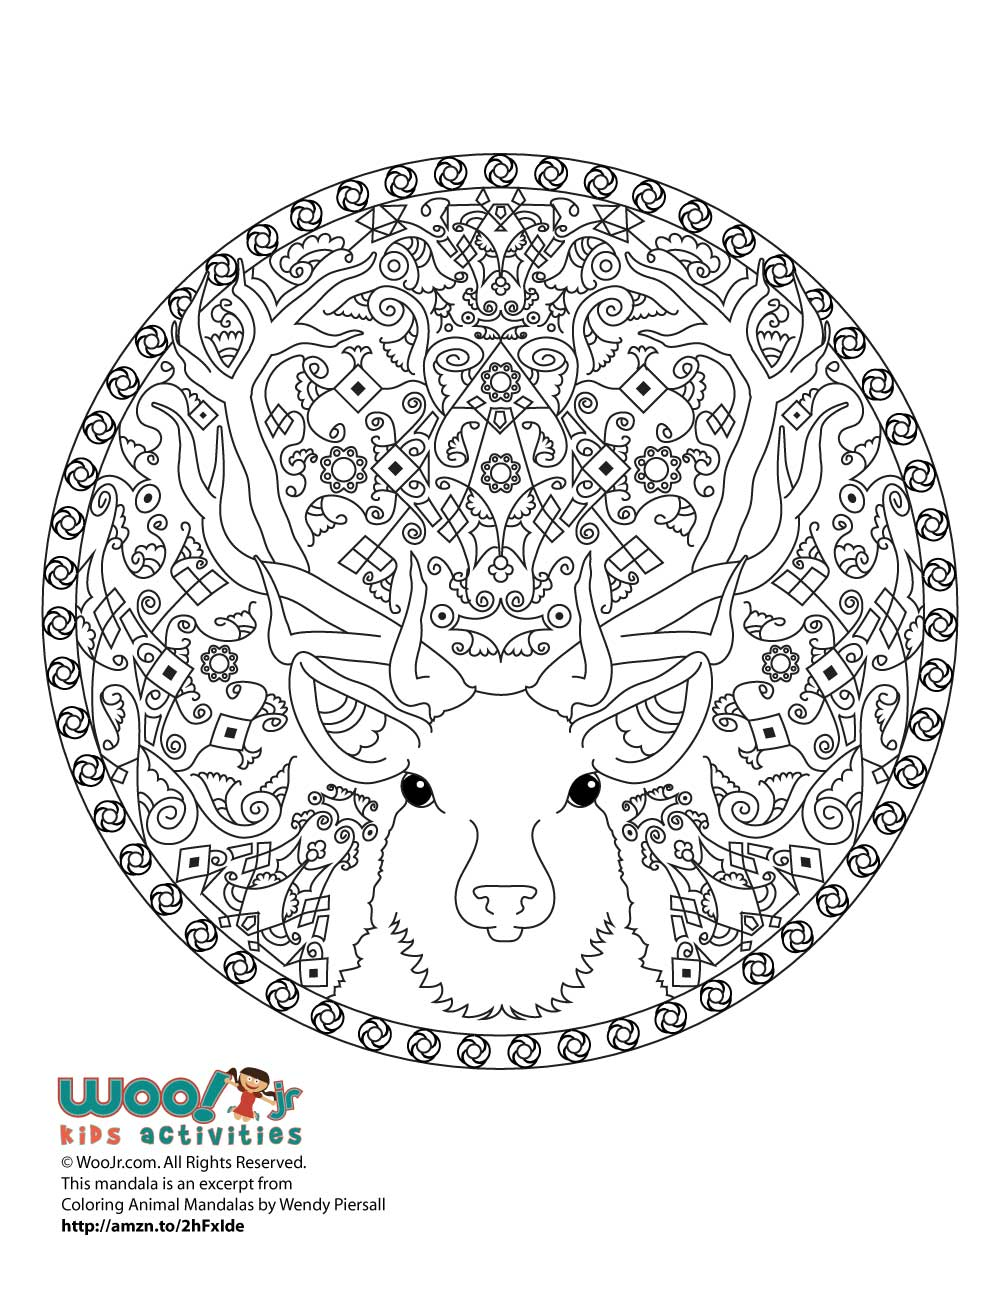 Christmas Mandala Coloring Pages With Reindeer Adult Page Woo Jr Kids